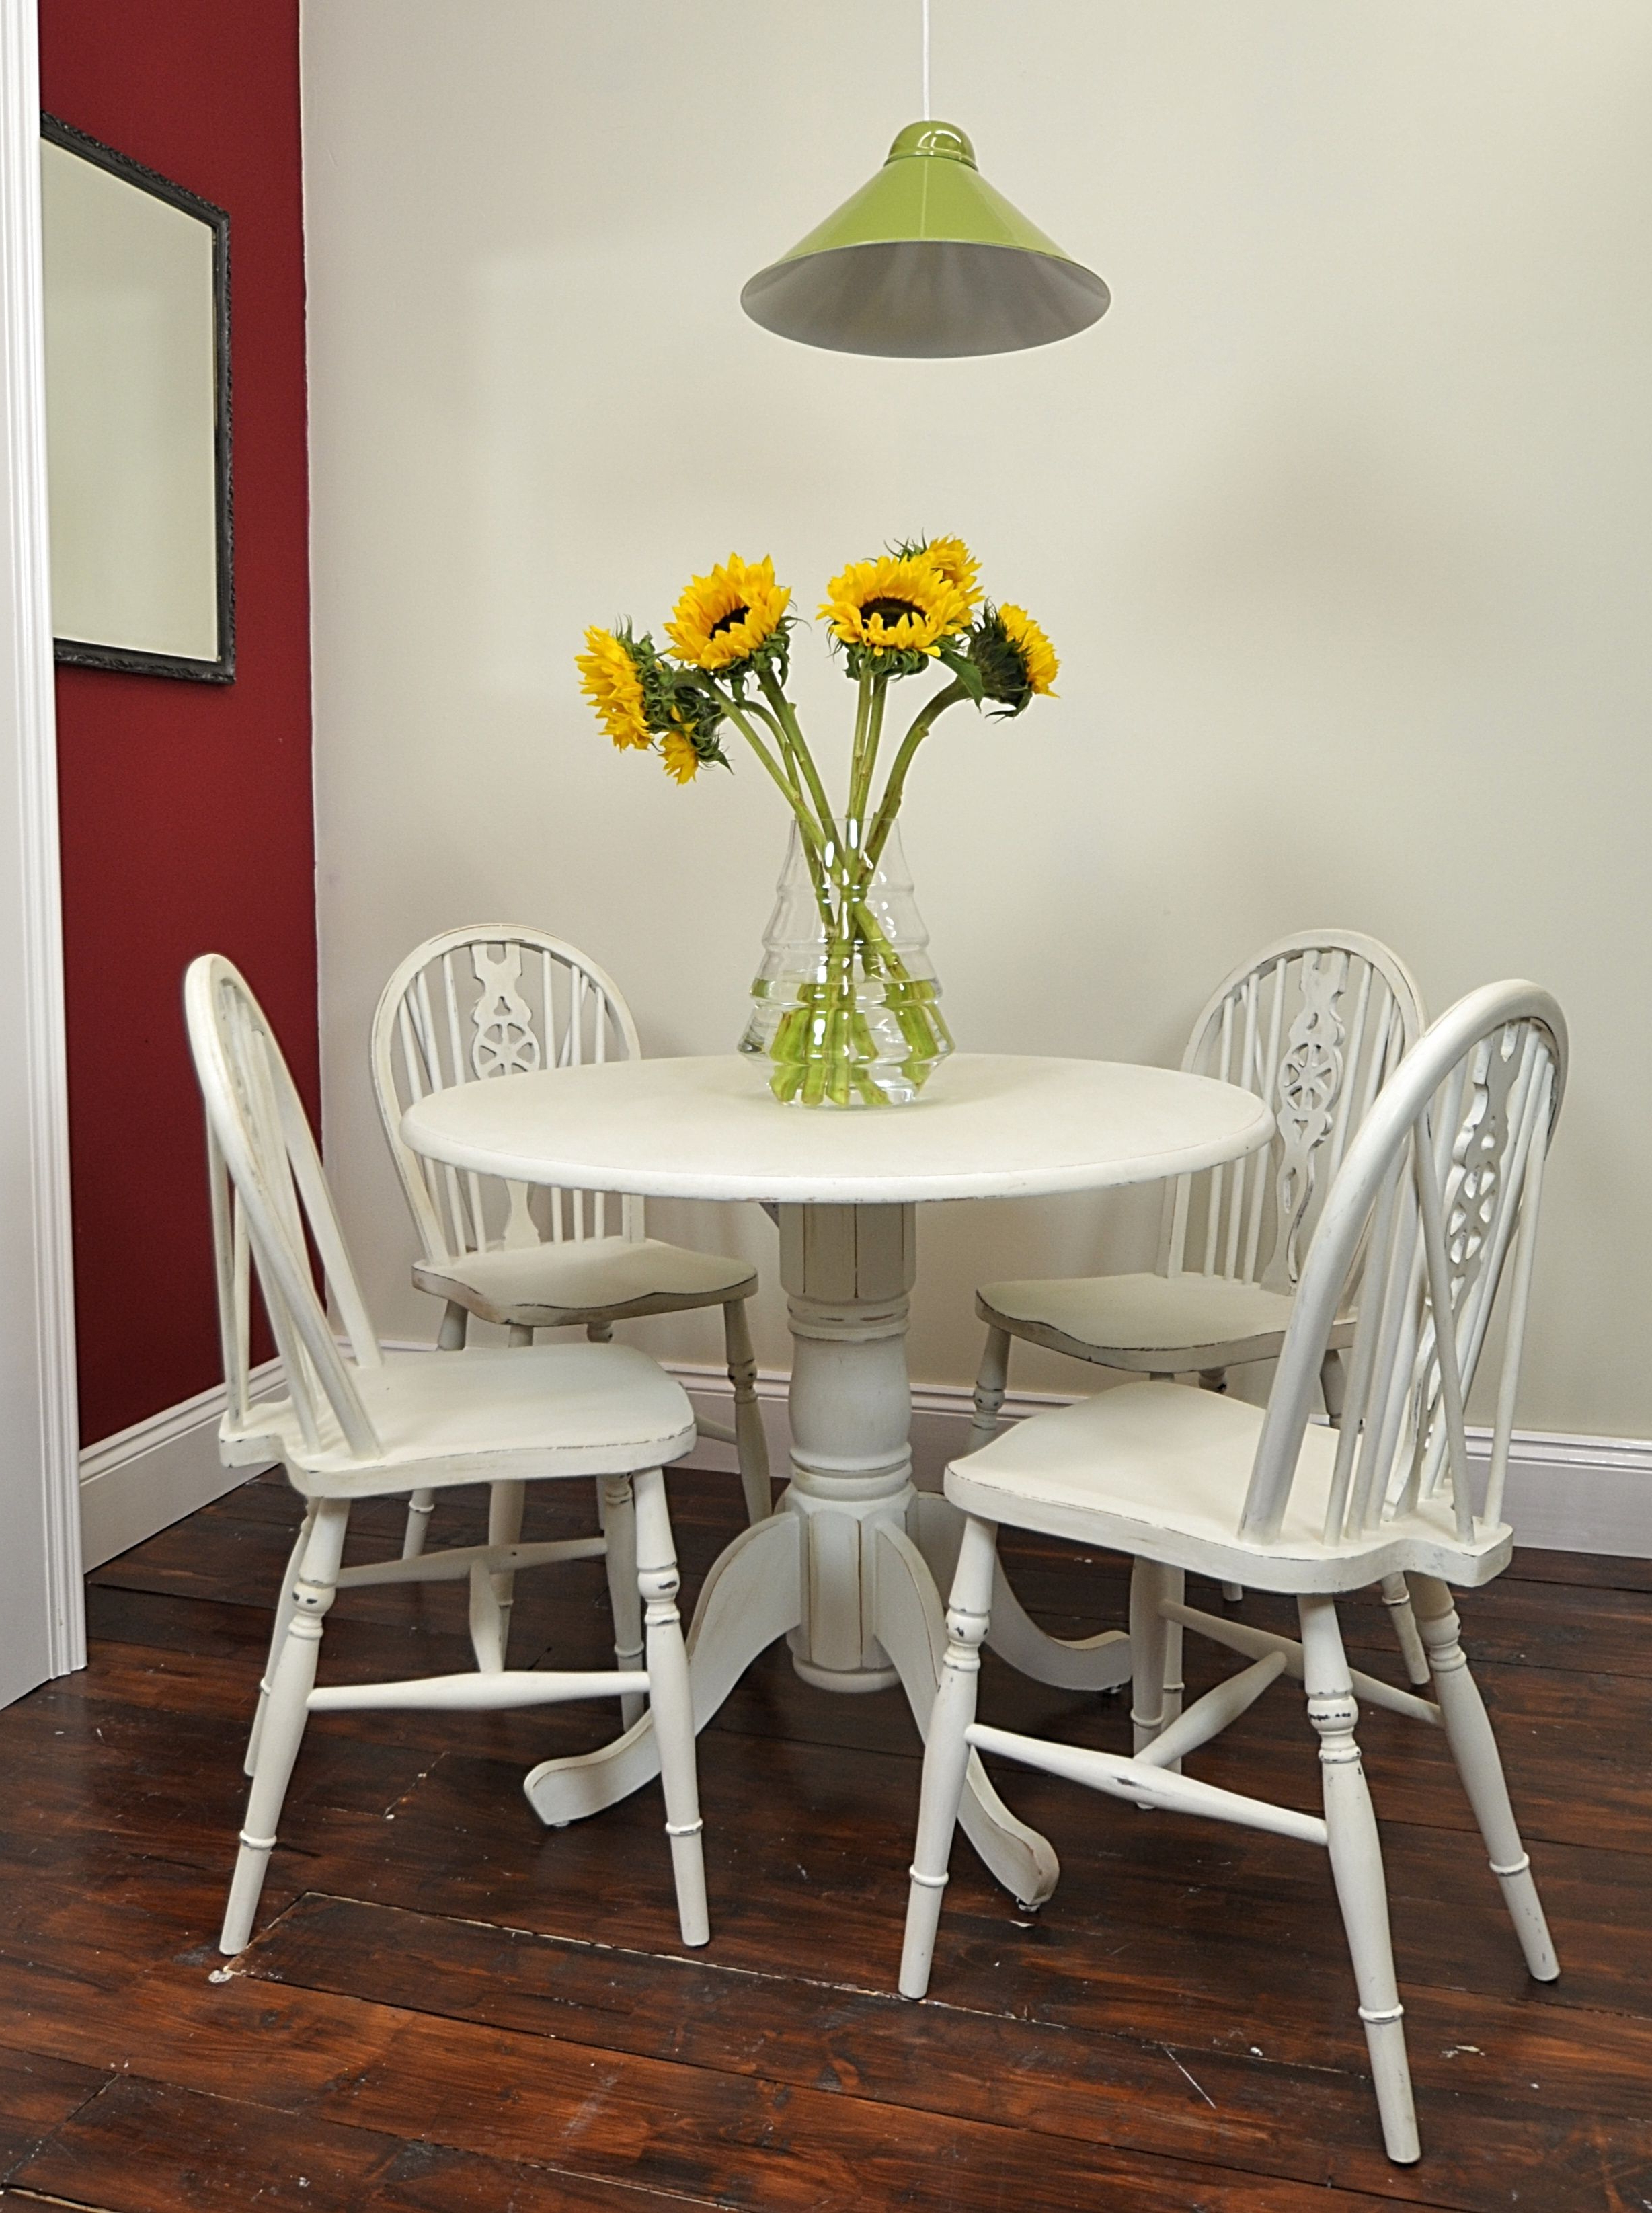 Small Round Table & Chair Set Painted In Old White | My Favorites For Chari Media Center Tables (View 15 of 20)